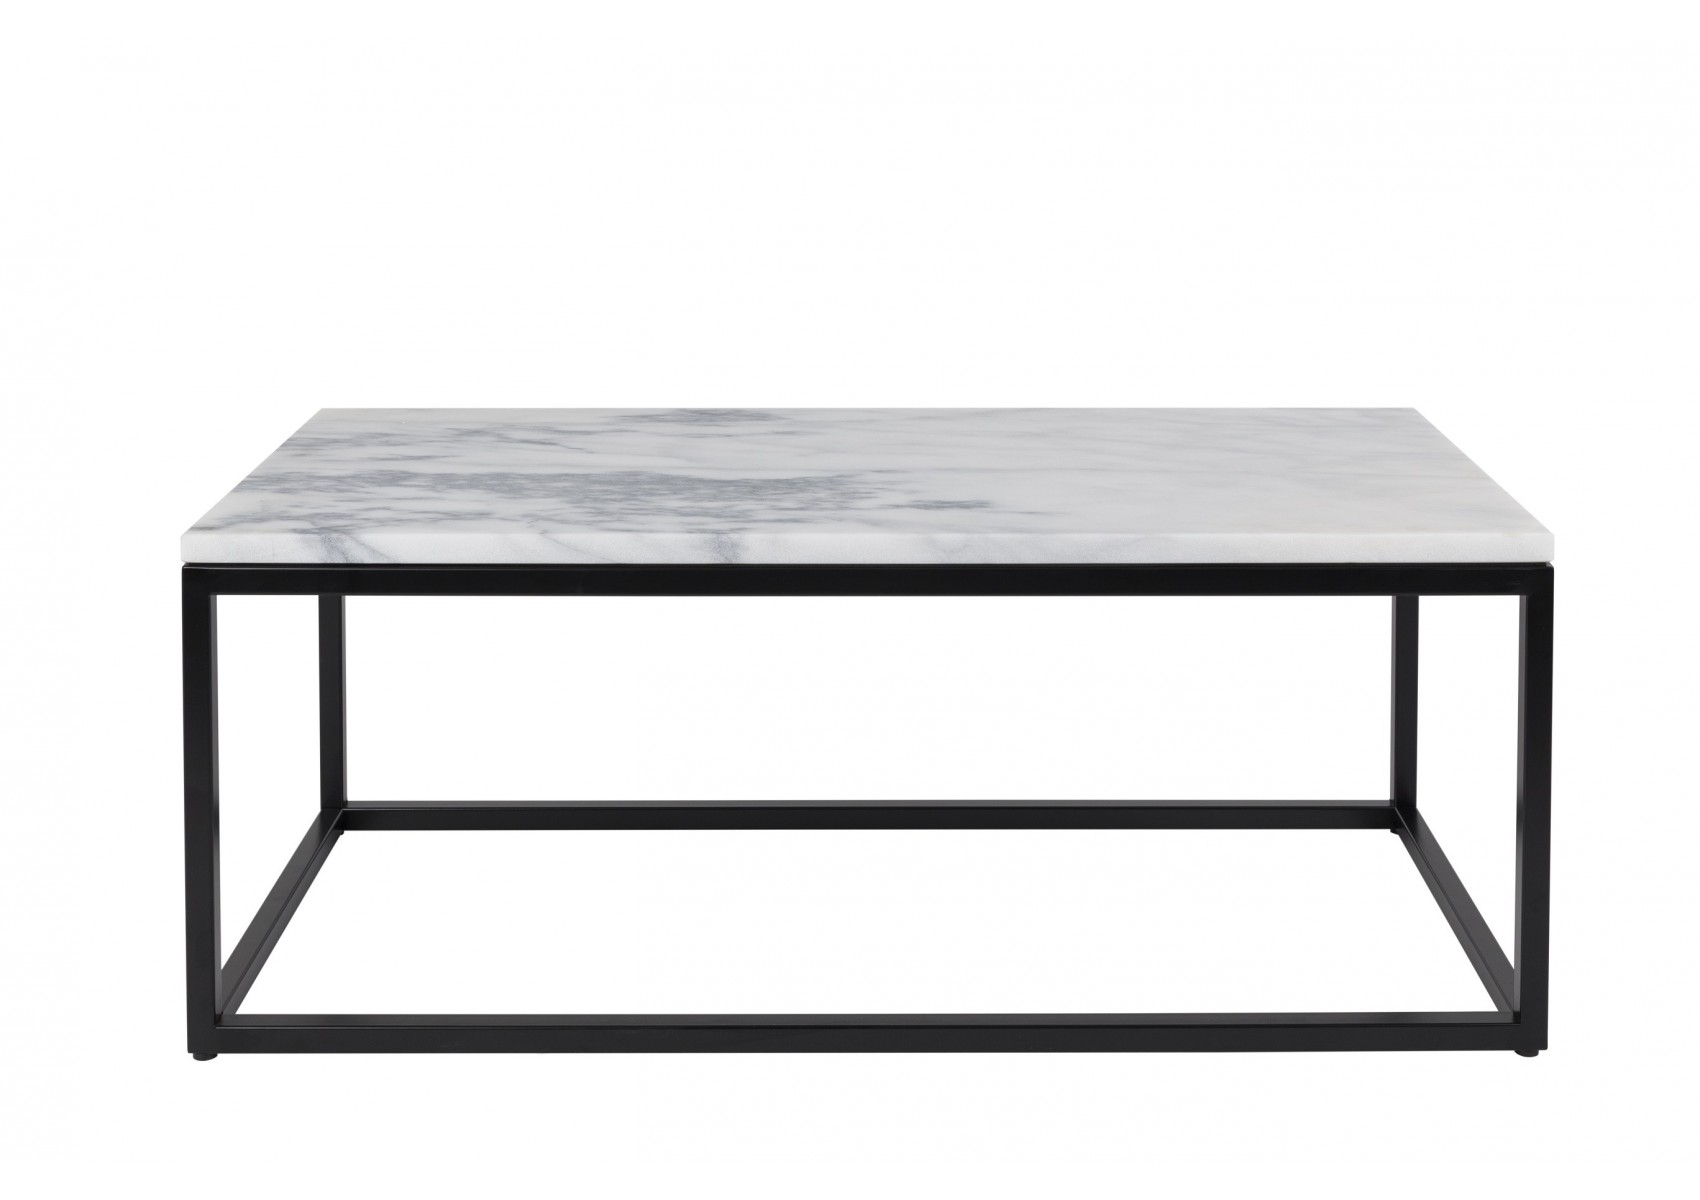 Modern Black And White Coffee Table Table Basse Marbre Power Déco Design Boite à Design